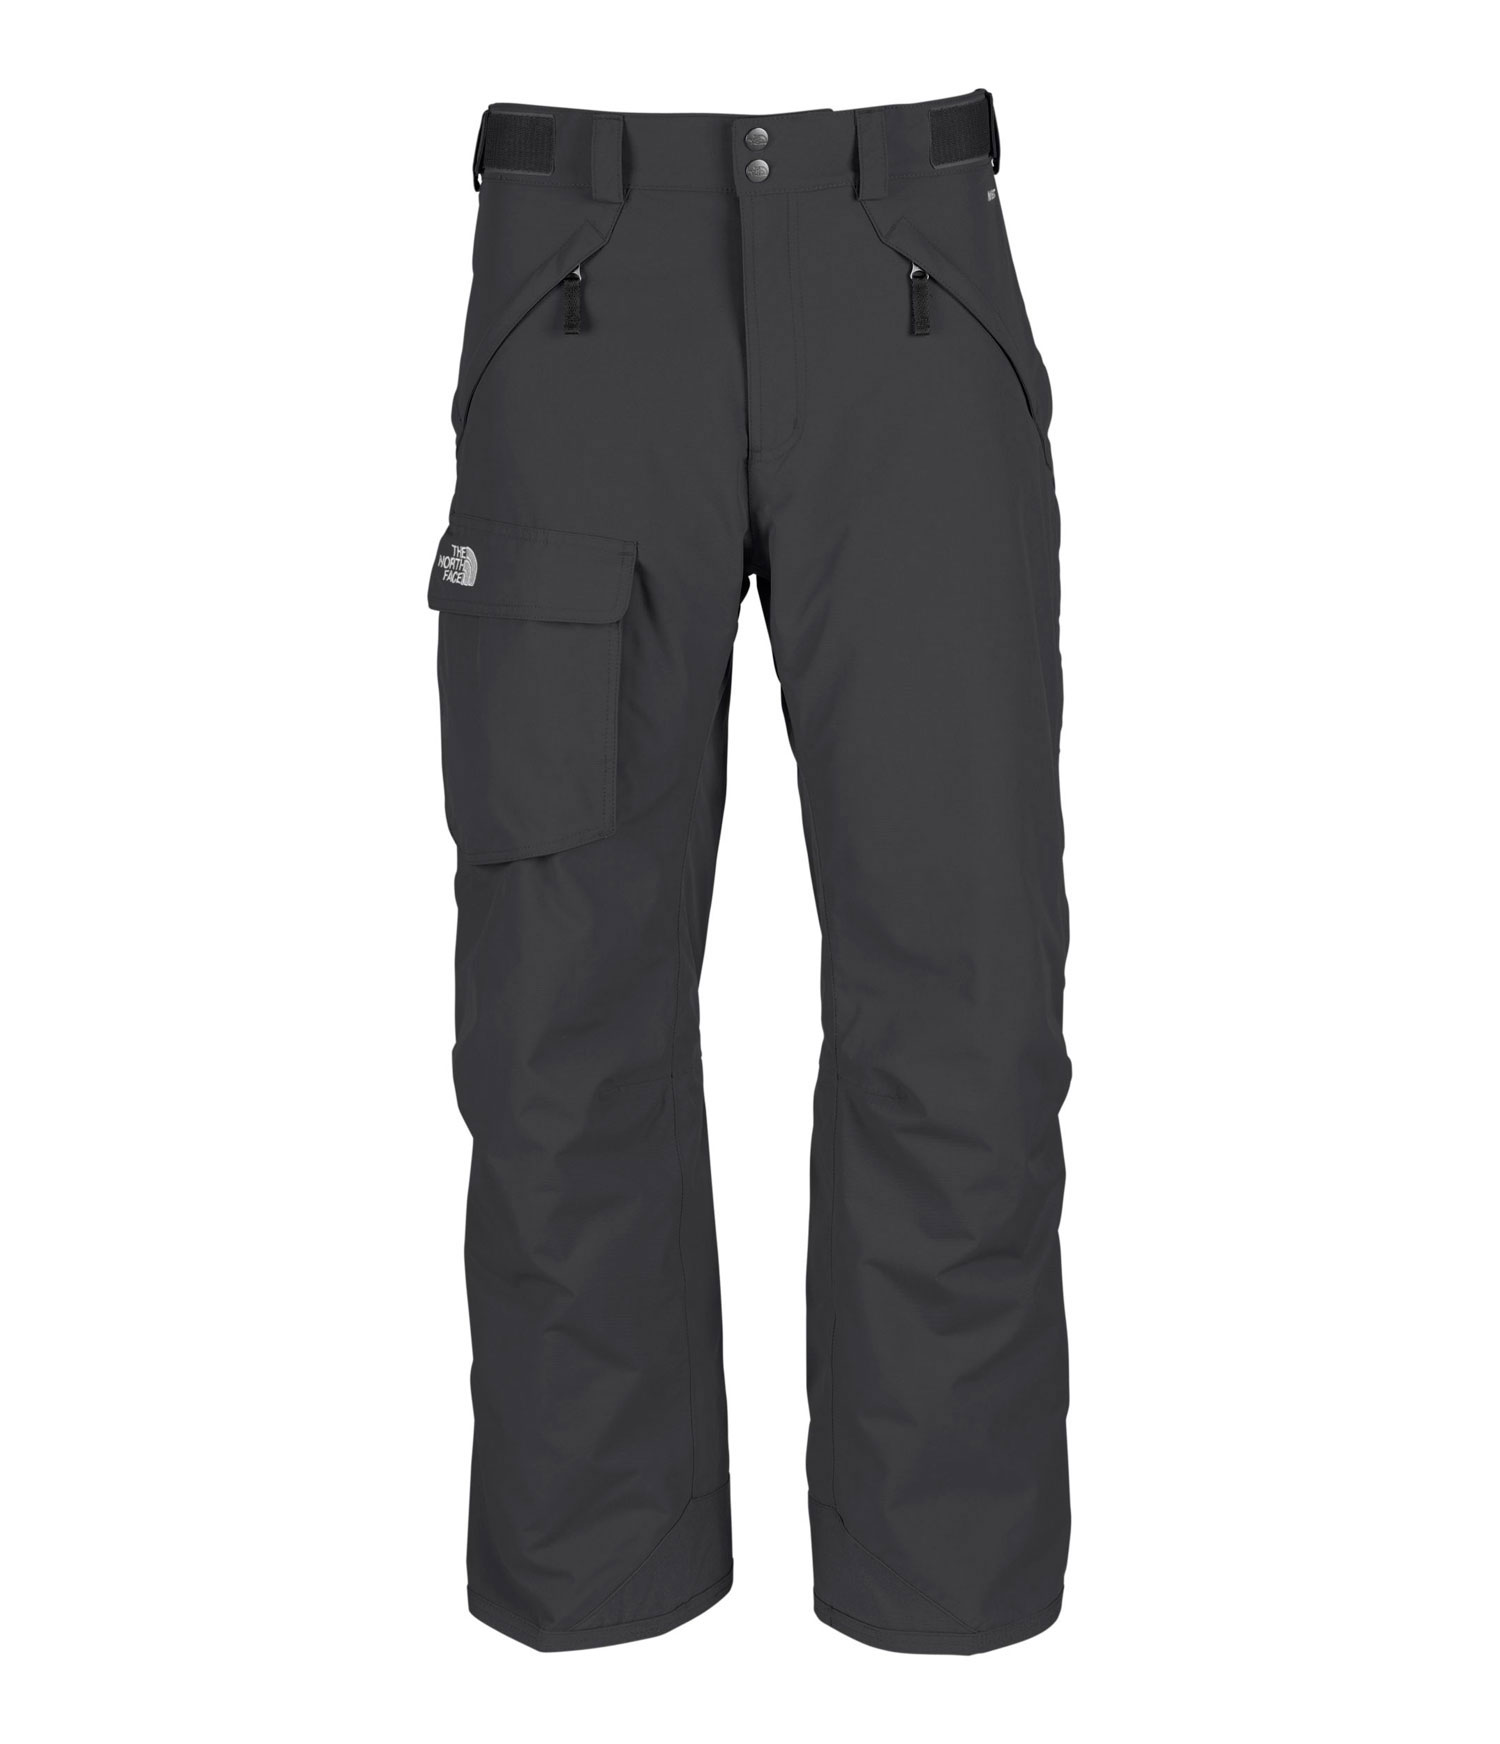 "Ski Free-fitting, high-performance pant with durable, waterproof construction. Key Features of The North Face Freedom Shell Ski Pants: Avg Weight: 770 g (27.16 oz) Inseam: S 29"", R 31"", L 33"" Fabric: 210D x 235D 189 g/m2 HyVent® 2L foxfaille nylon faille Waterproof, breathable, fully seam sealed Adjustable waist tabs Handwarmer zip pockets Exterior thigh vents with mesh gussets Flap cargo pocket StretchVent ™ gaiter with gripper elastic Chimney Venting™ system Reinforced cuff - $140.00"